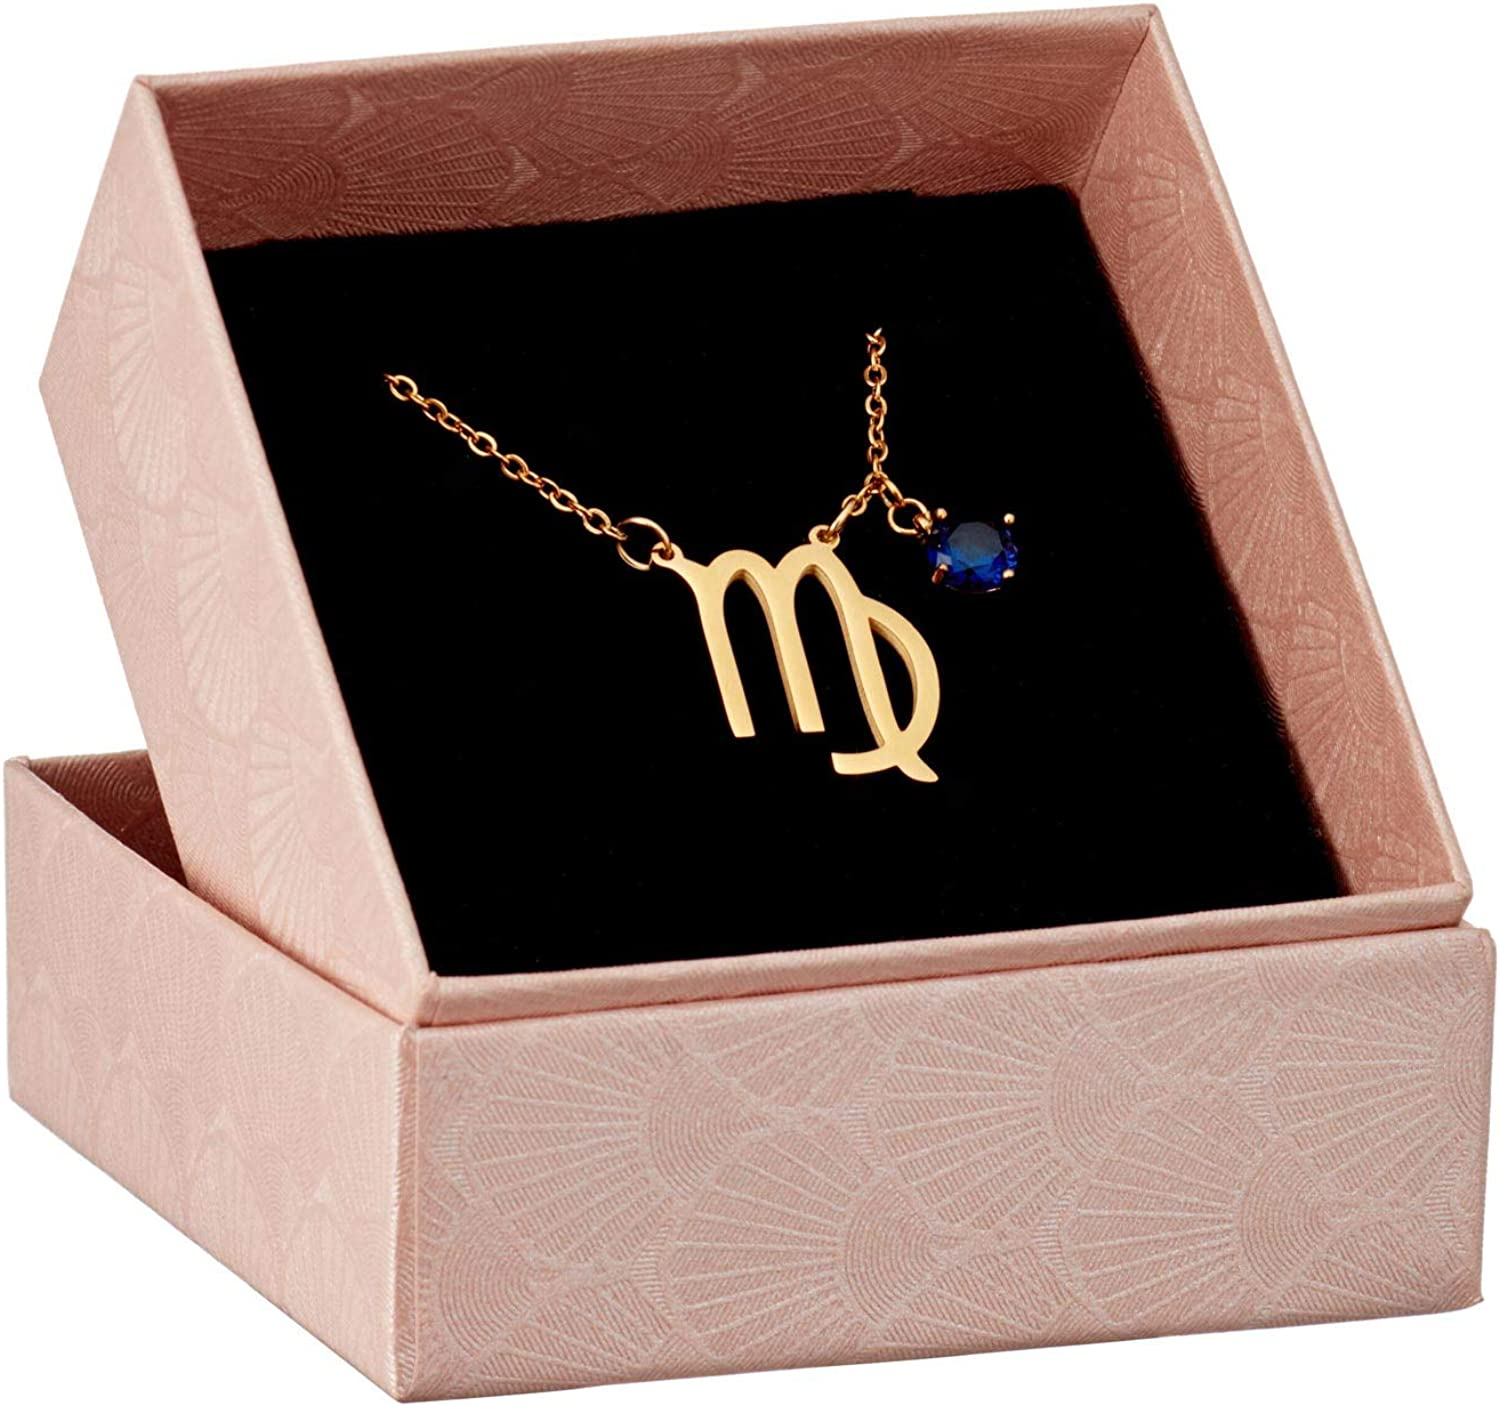 We Love Horoscope Specialty Zodiac Star Sign Necklace with Birth Stone Pendant; 16-inch, 18k Gold-Plated 316 Stainless Steel Chain with Colored Cubic Zirconia